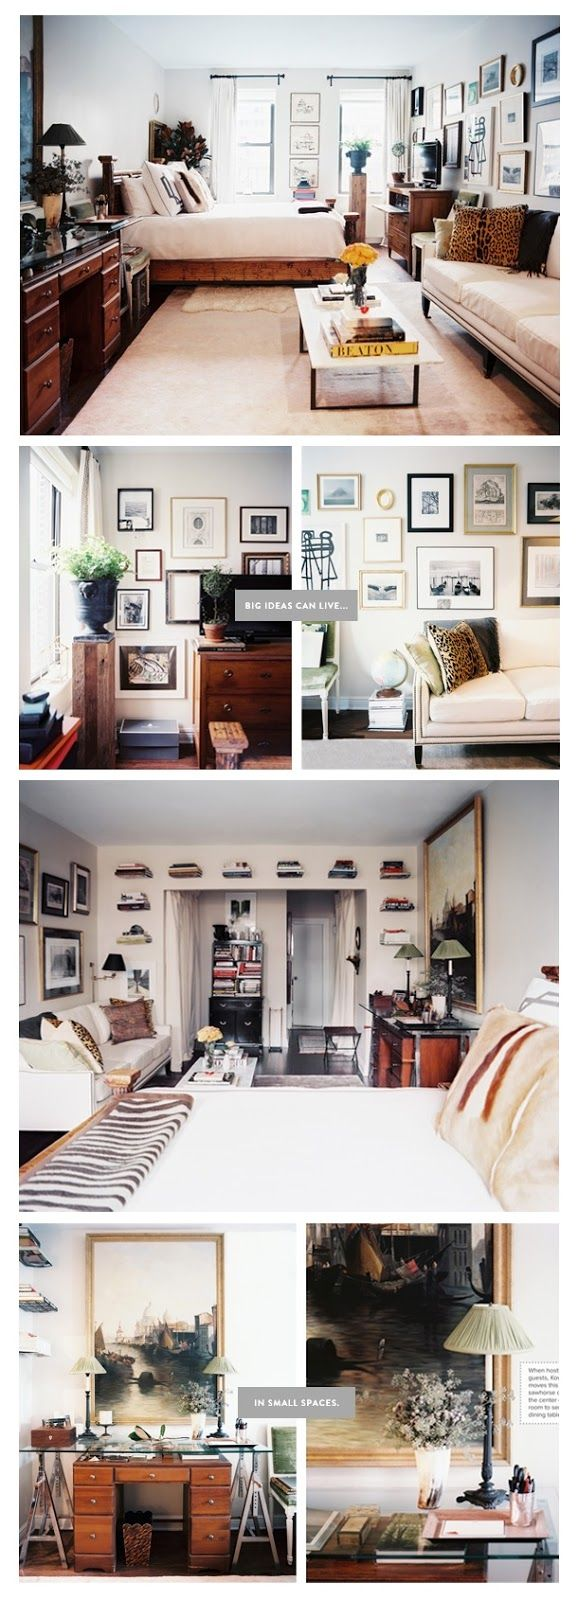 Best Studio Images On Pinterest Beds A Small And Bedroom - A small apartment with big dreams